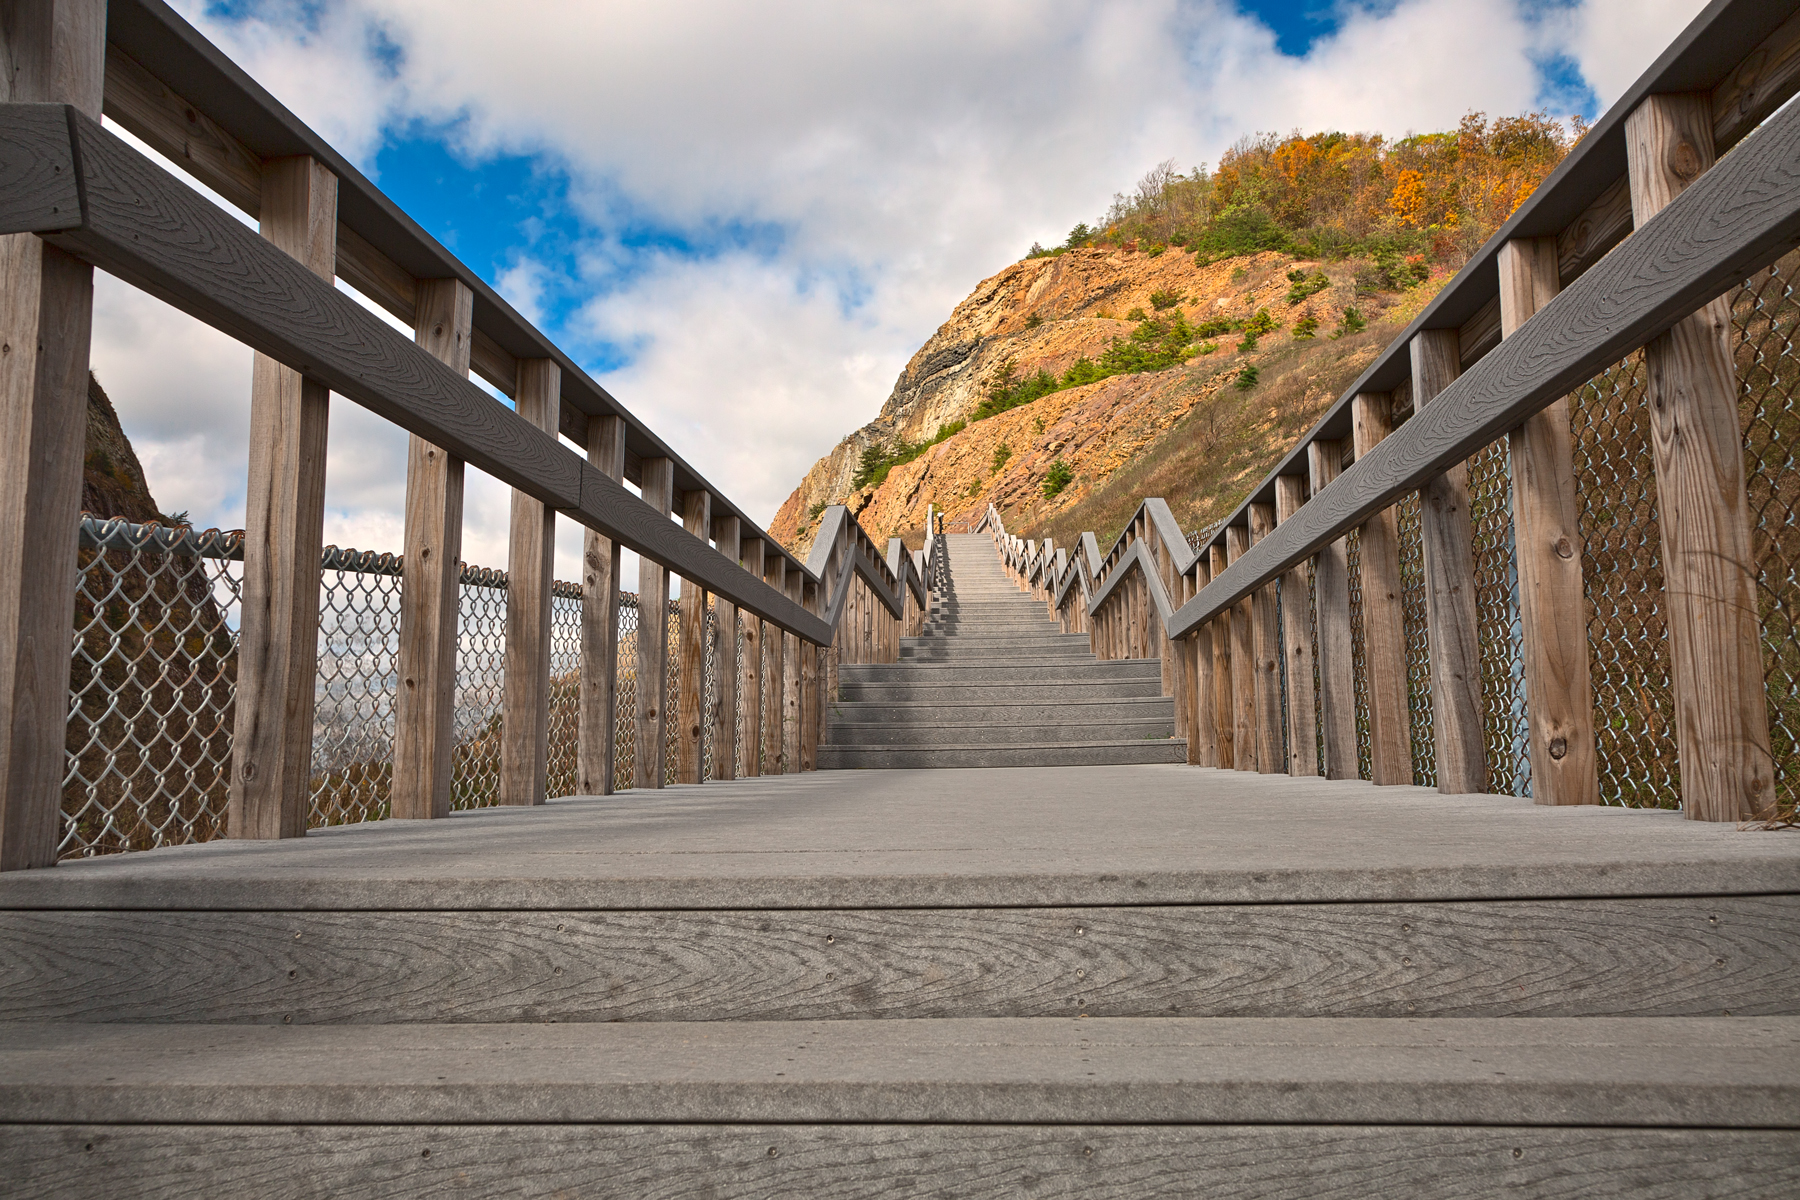 Sideling hill stairway - hdr photo